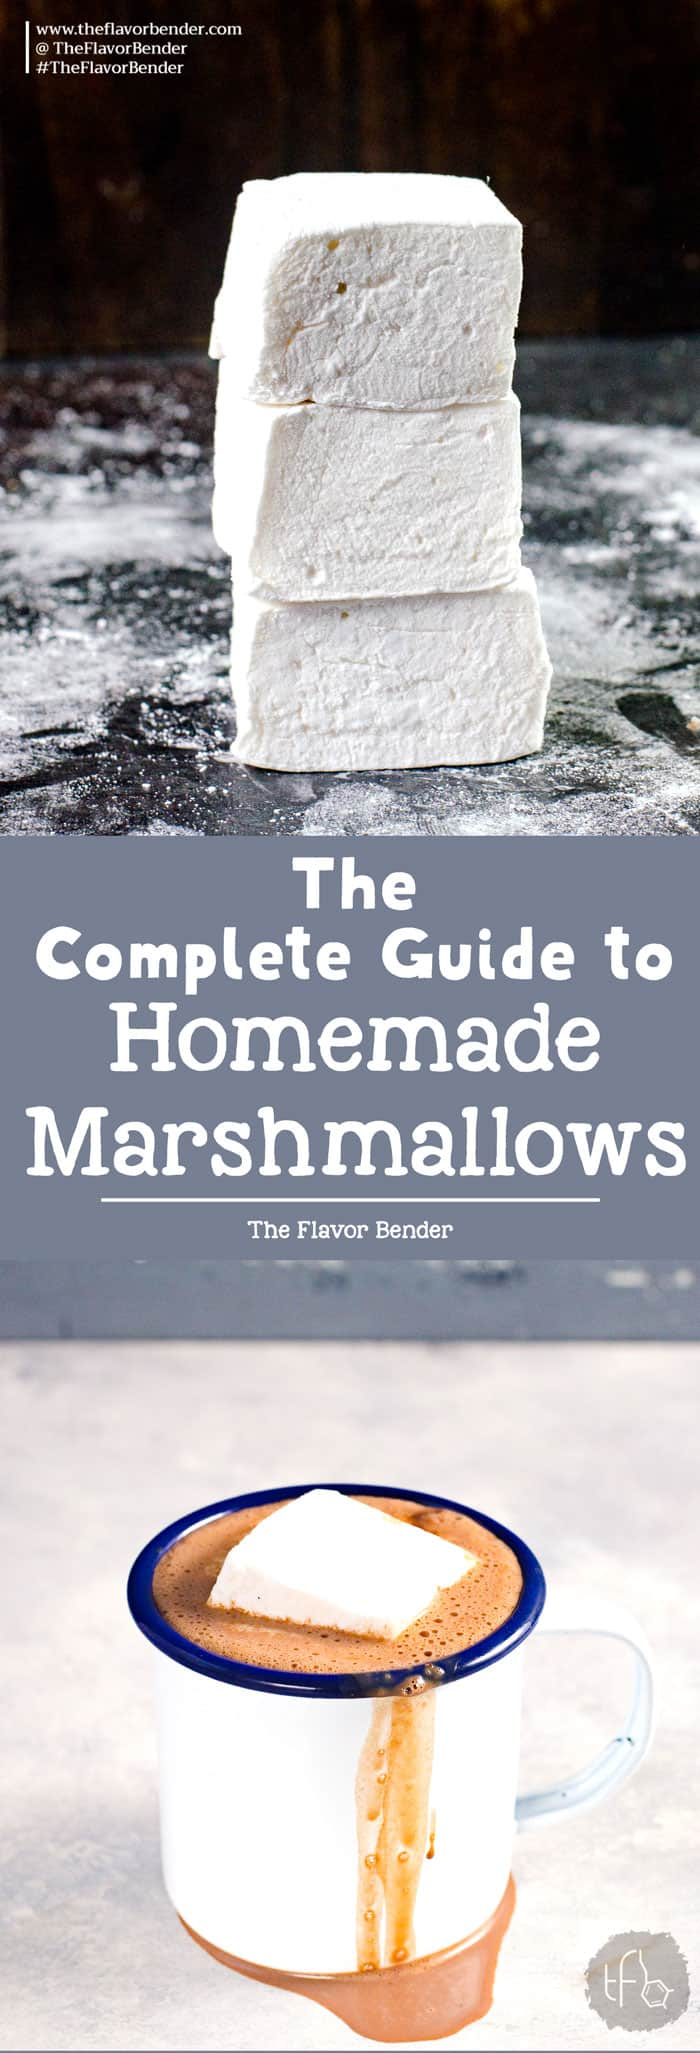 Learn how to make marshmallows without corn syrup (or with corn syrup) with this step by step detailed recipe. Once you know the basics, you can make perfect vanilla marshmallows every single time.